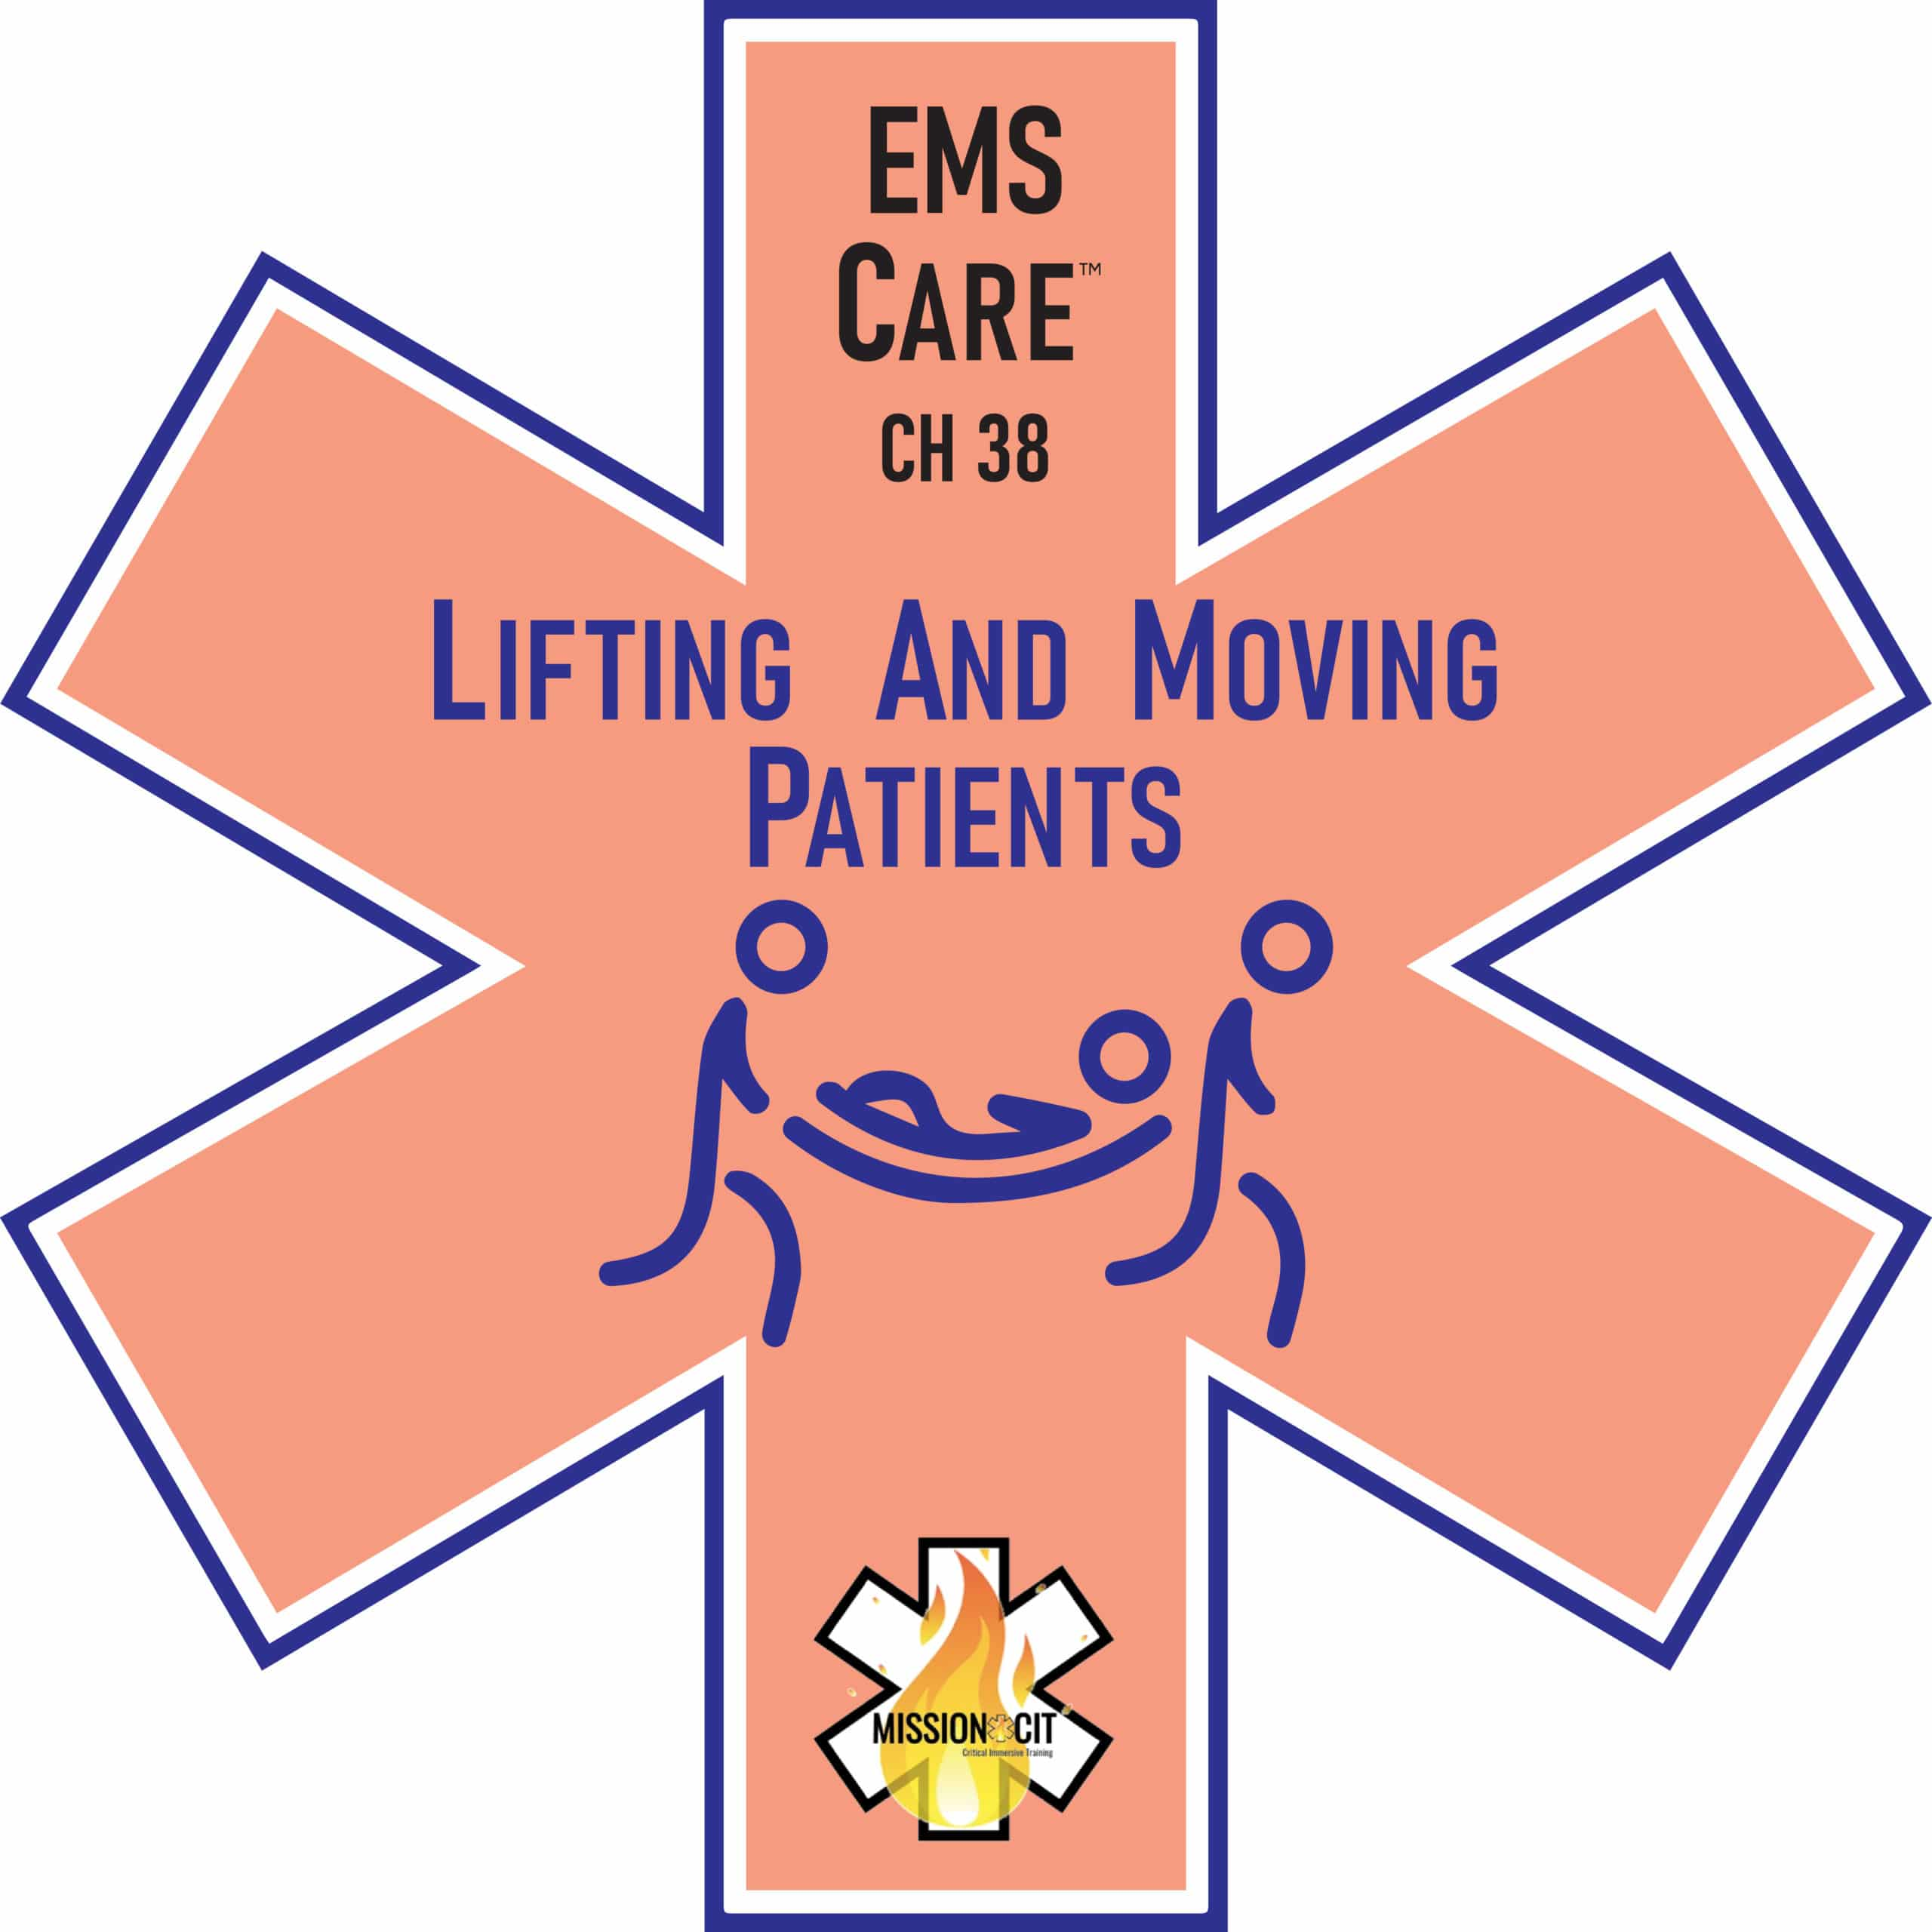 missioncit-ems-care-lifting-and-moving-patients